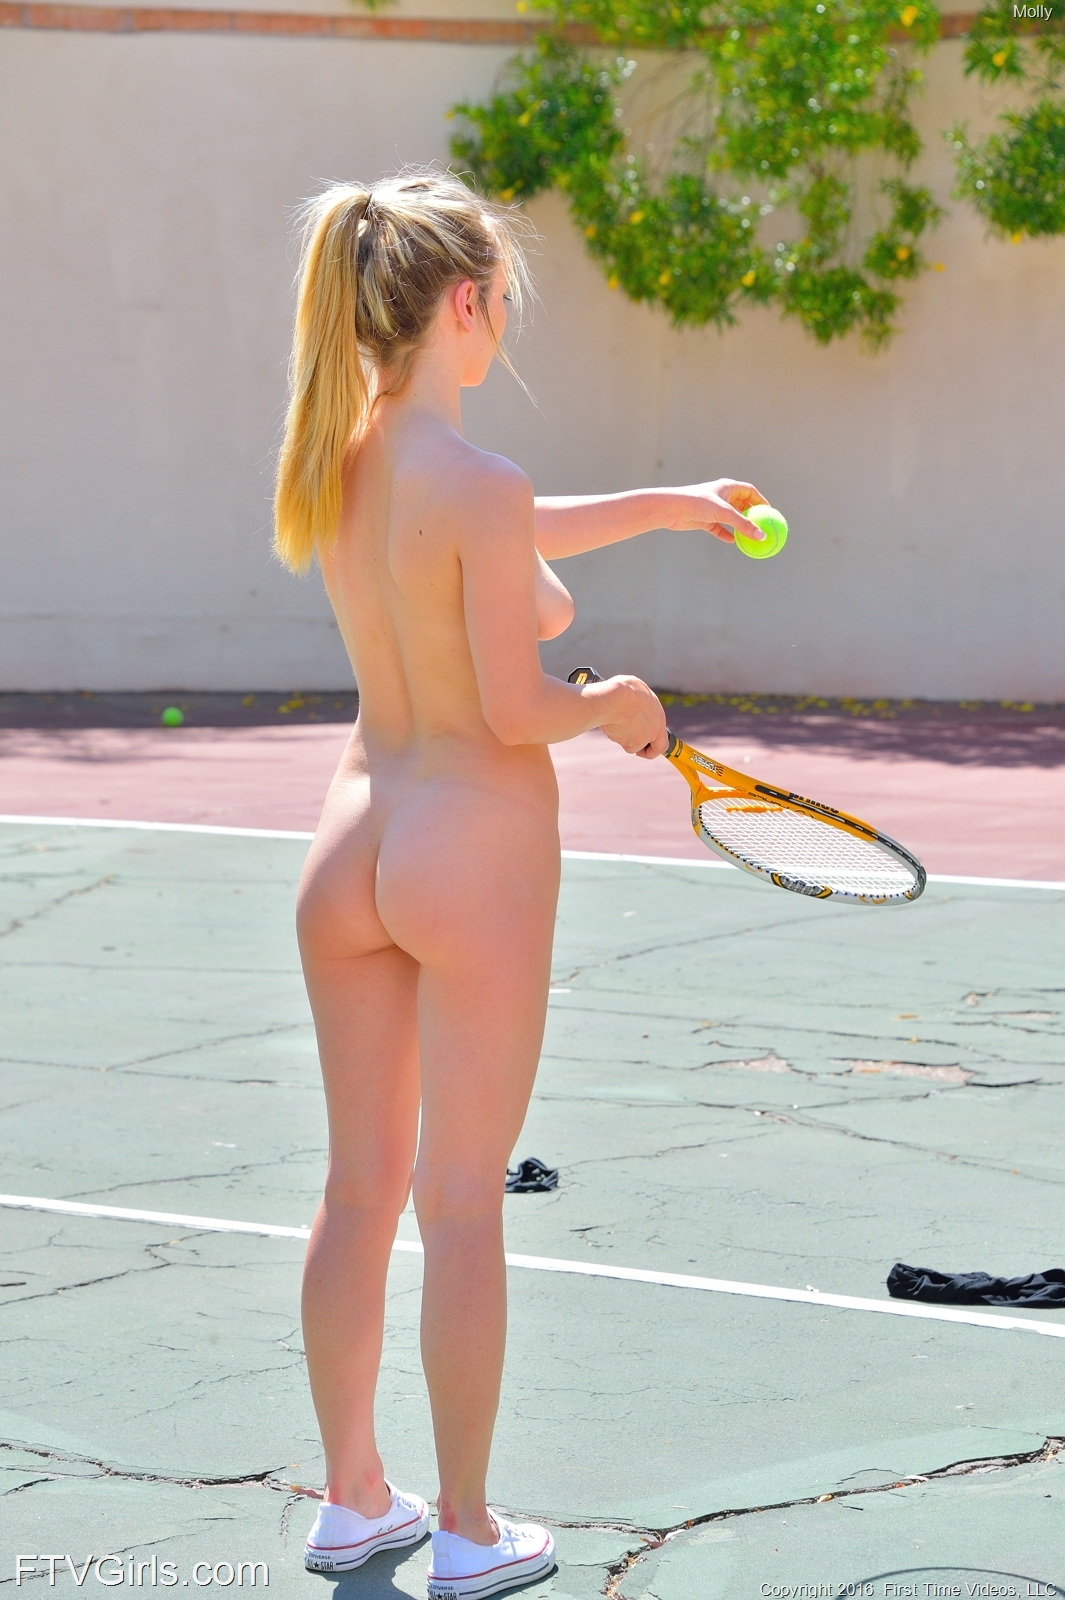 lonely wife seduce postman fuck hard free sex videos #MollyMae #Nudity #outdoors #tennis #ponytail #blonde